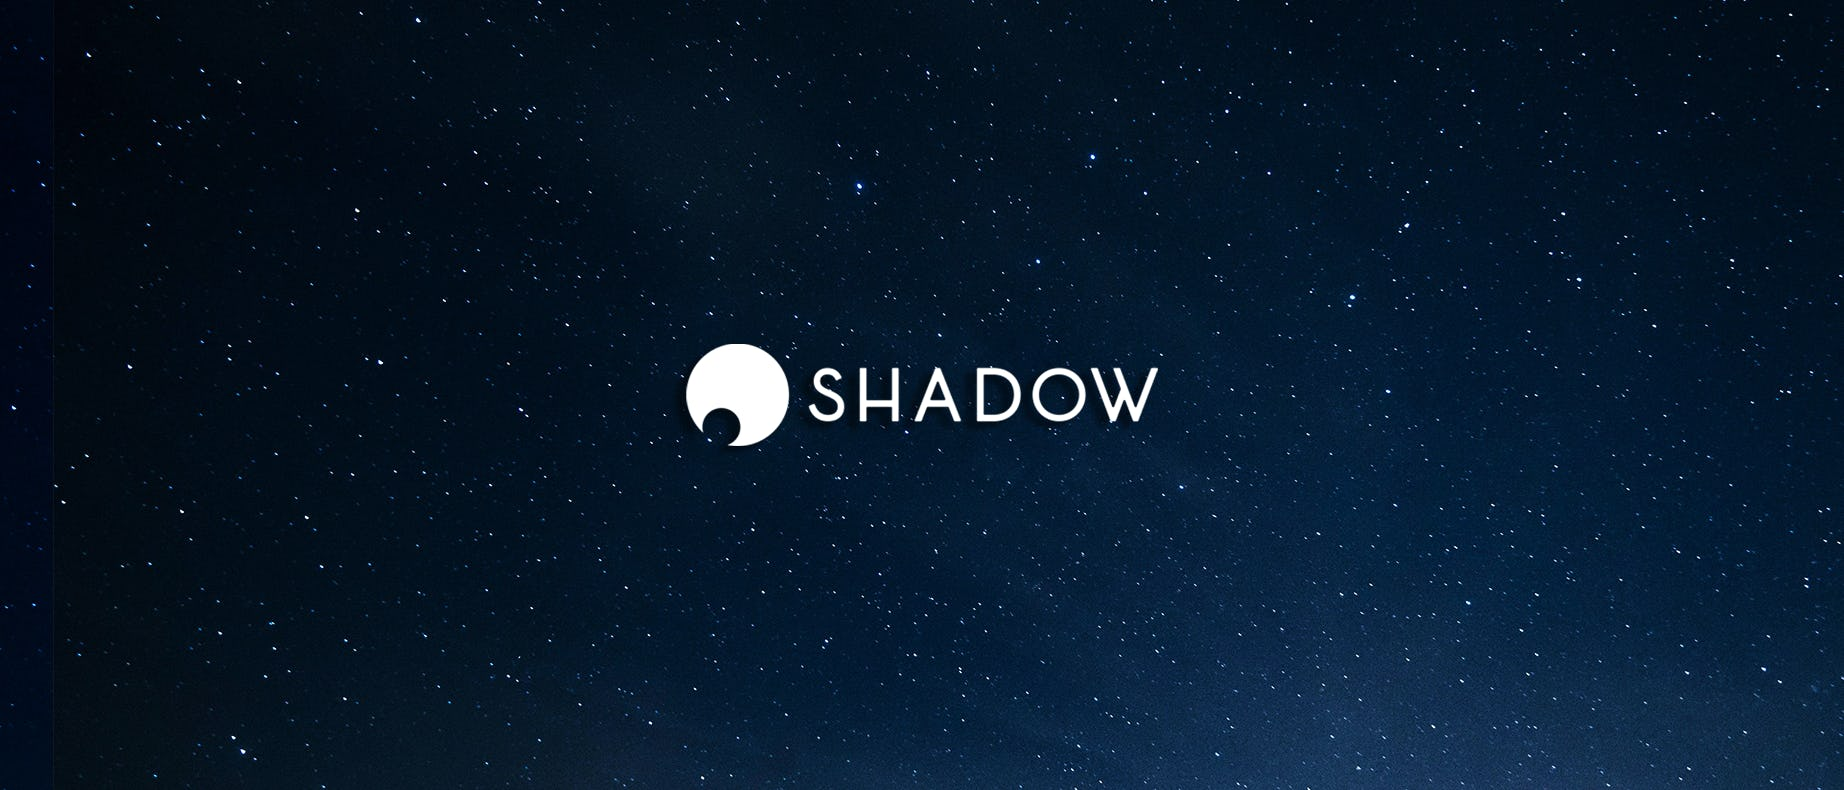 Shadow's new chapter starts now